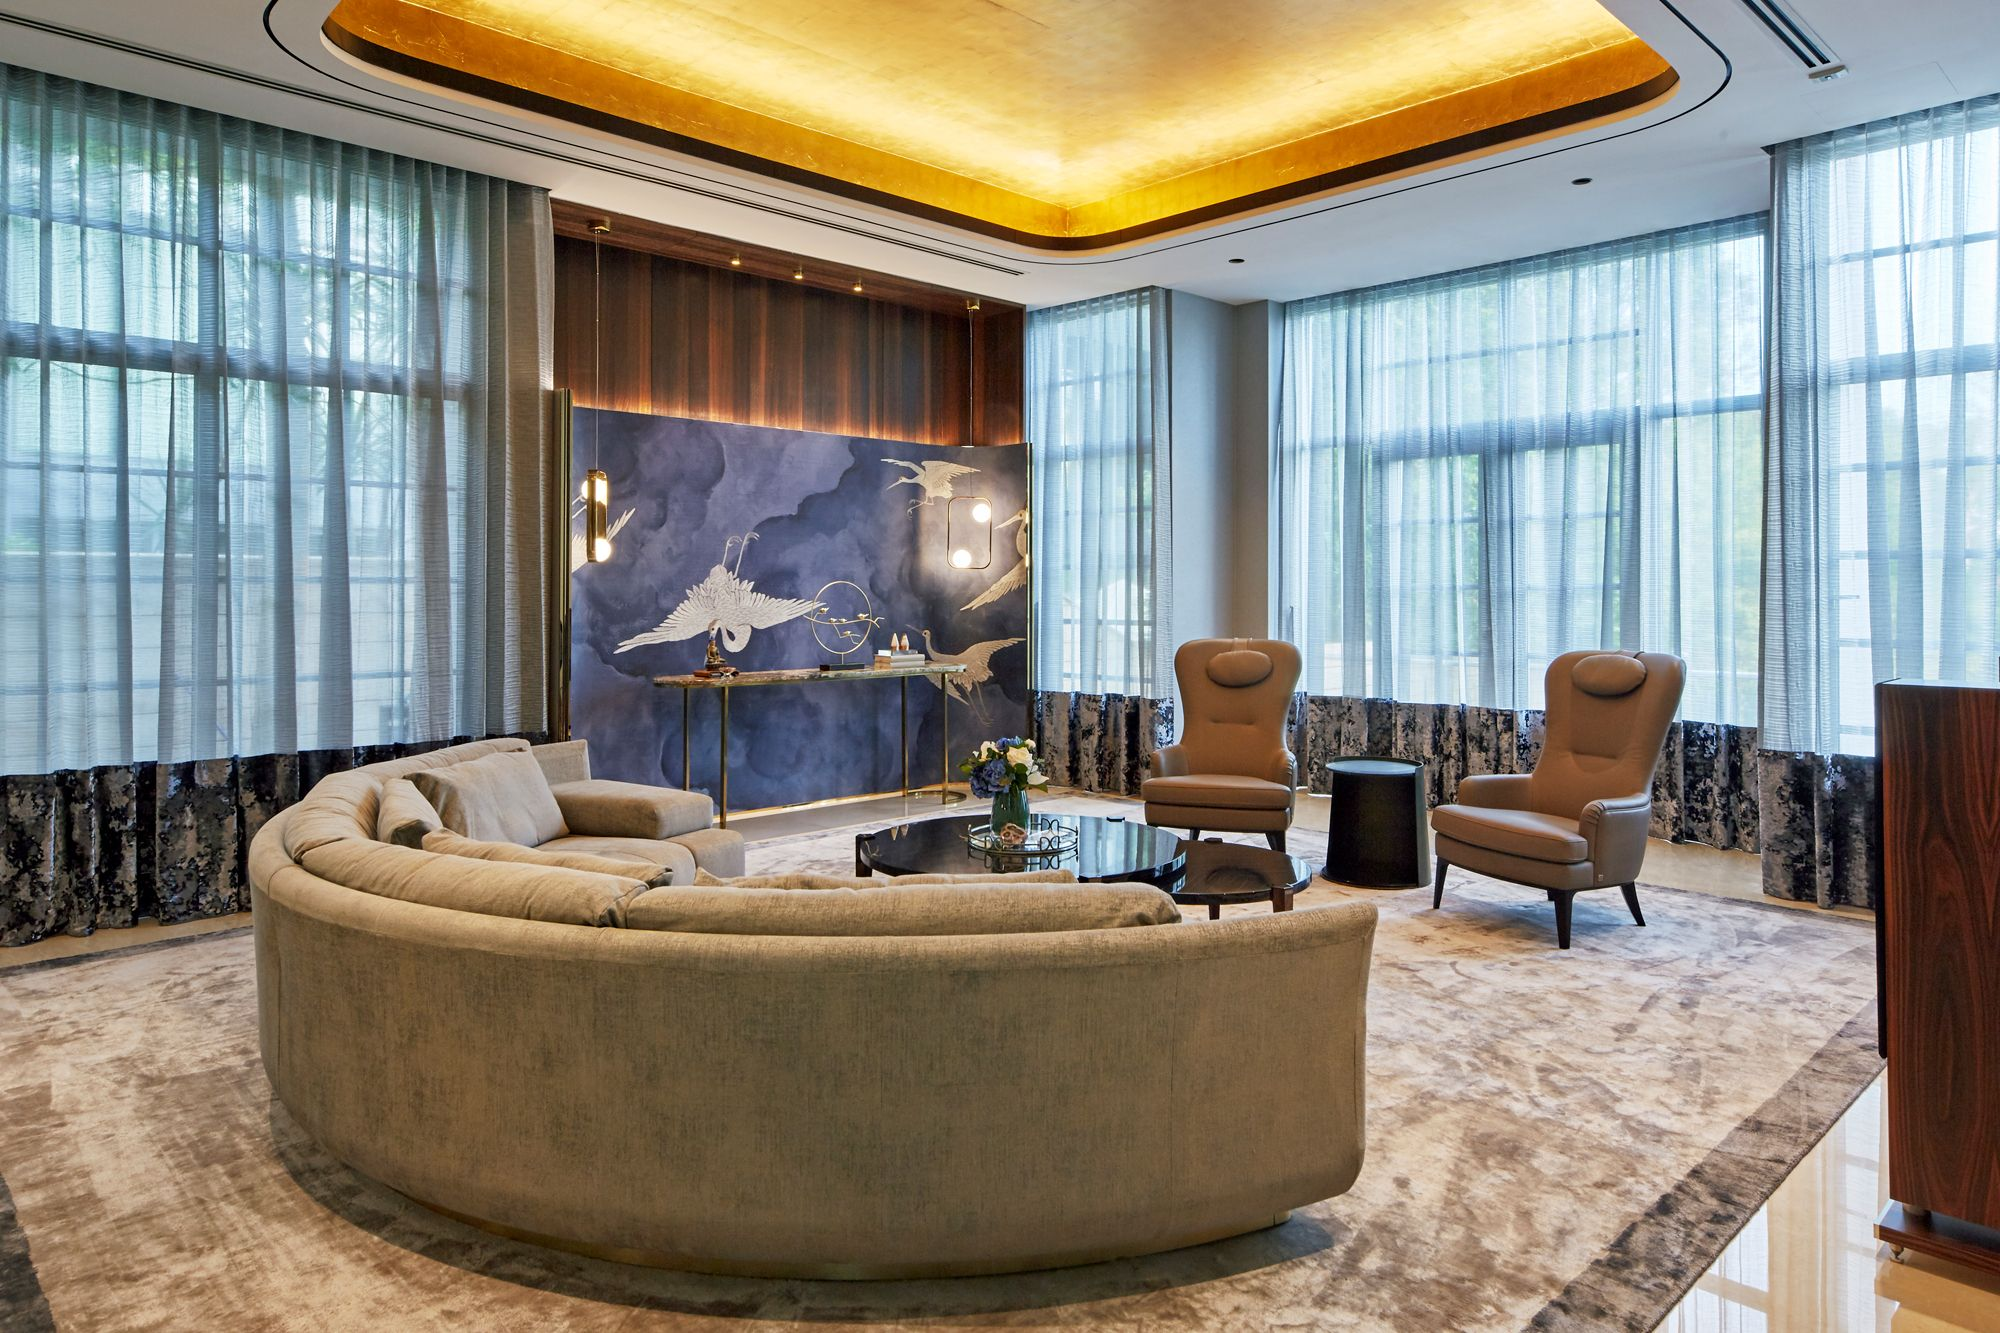 The formal living room, one of KGID's favourite spaces, features a blue Philip Jeffries crane wall covering that adds a pop of colour